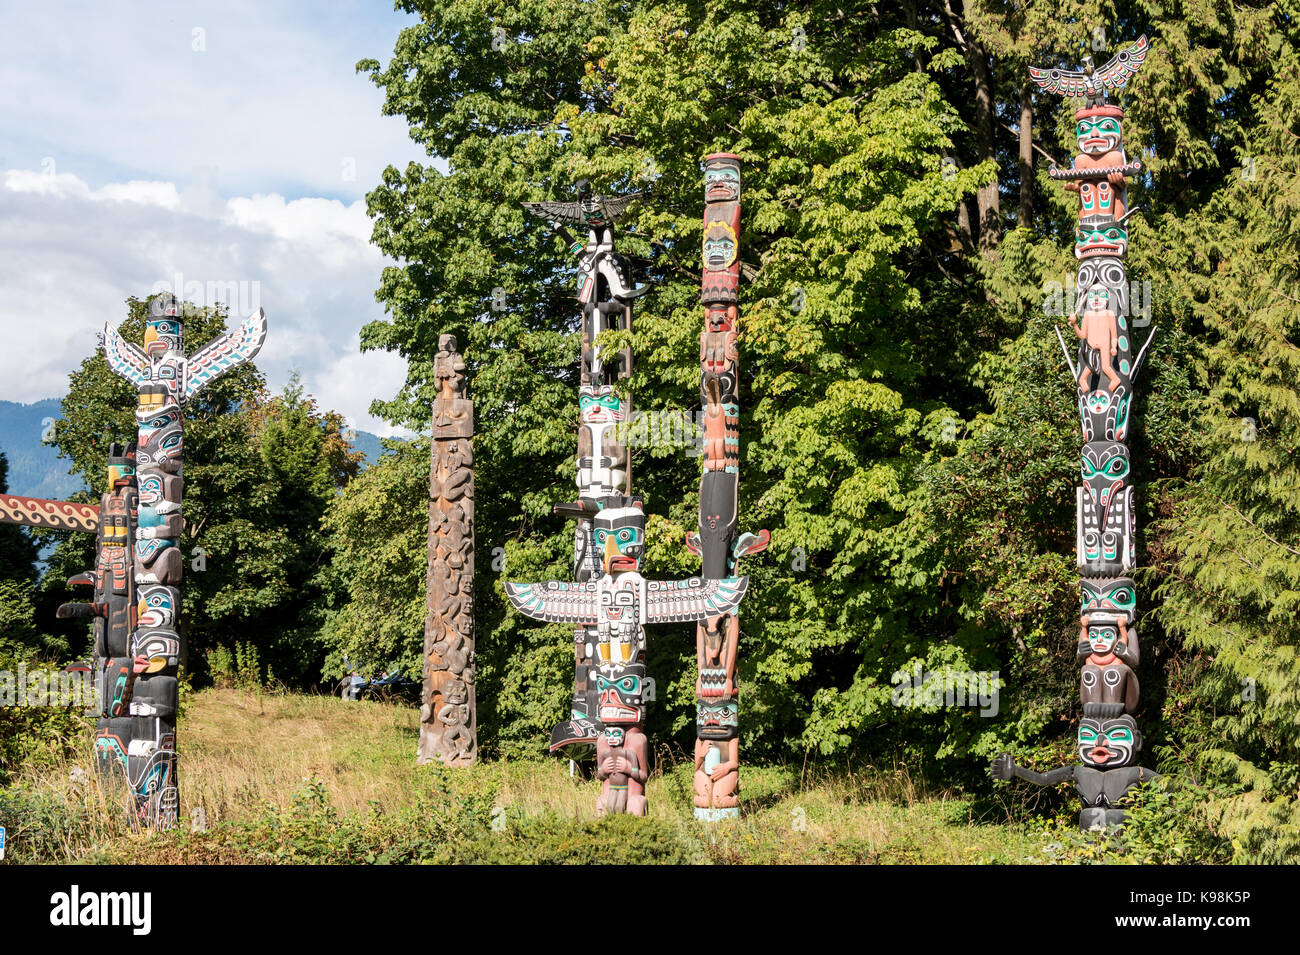 Vancouver, British Columbia, Canada - 12 September 2017: First nations art and totem poles at Stanley Park - Stock Image